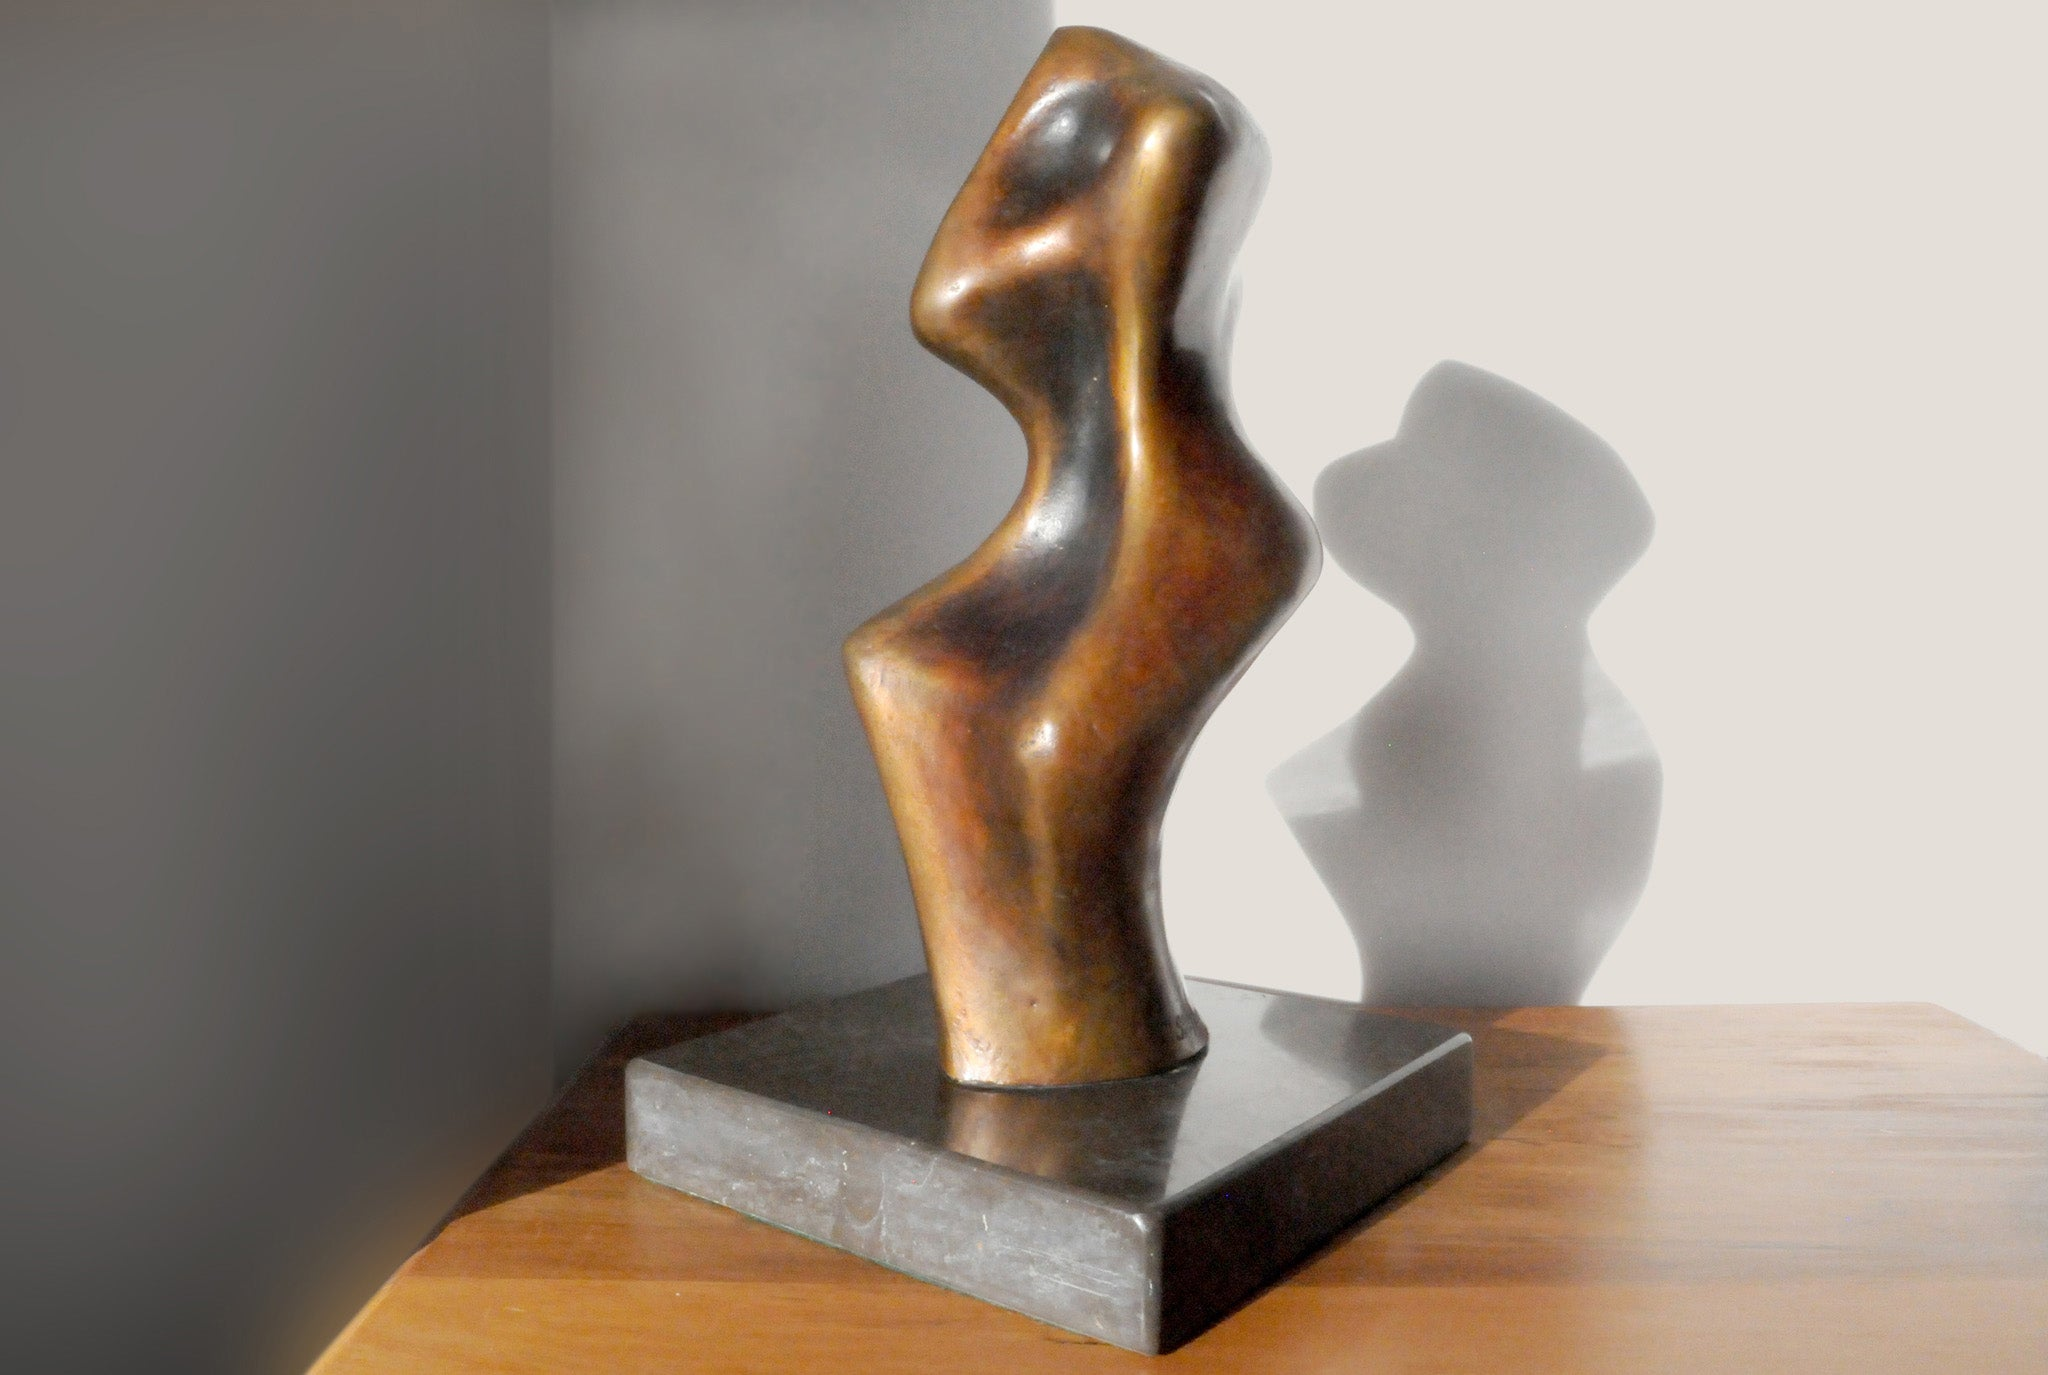 Abstract bronze sculpture for sale by Stephen Williams.